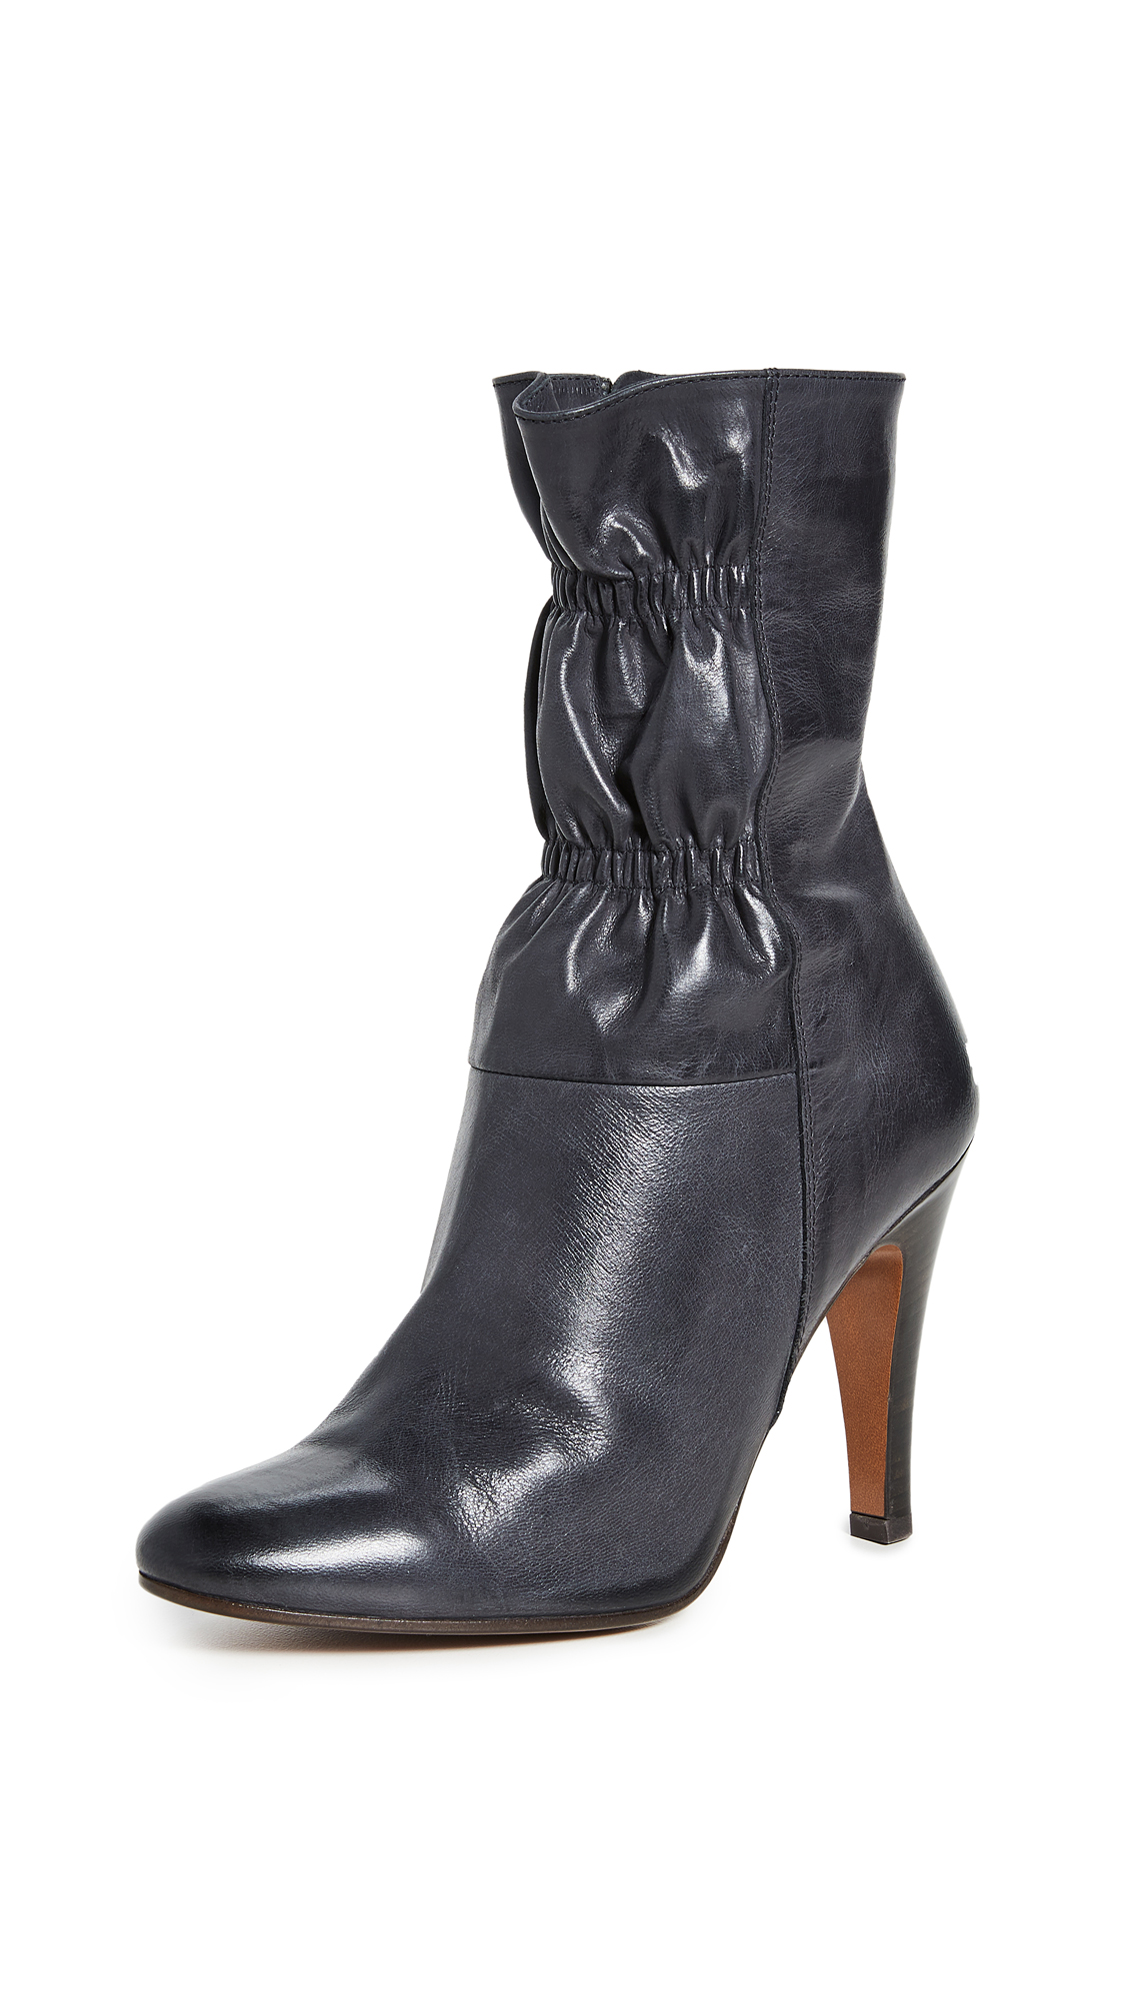 Runway Marc Jacobs Short 100mm Scrunch Boots - 70% Off Sale